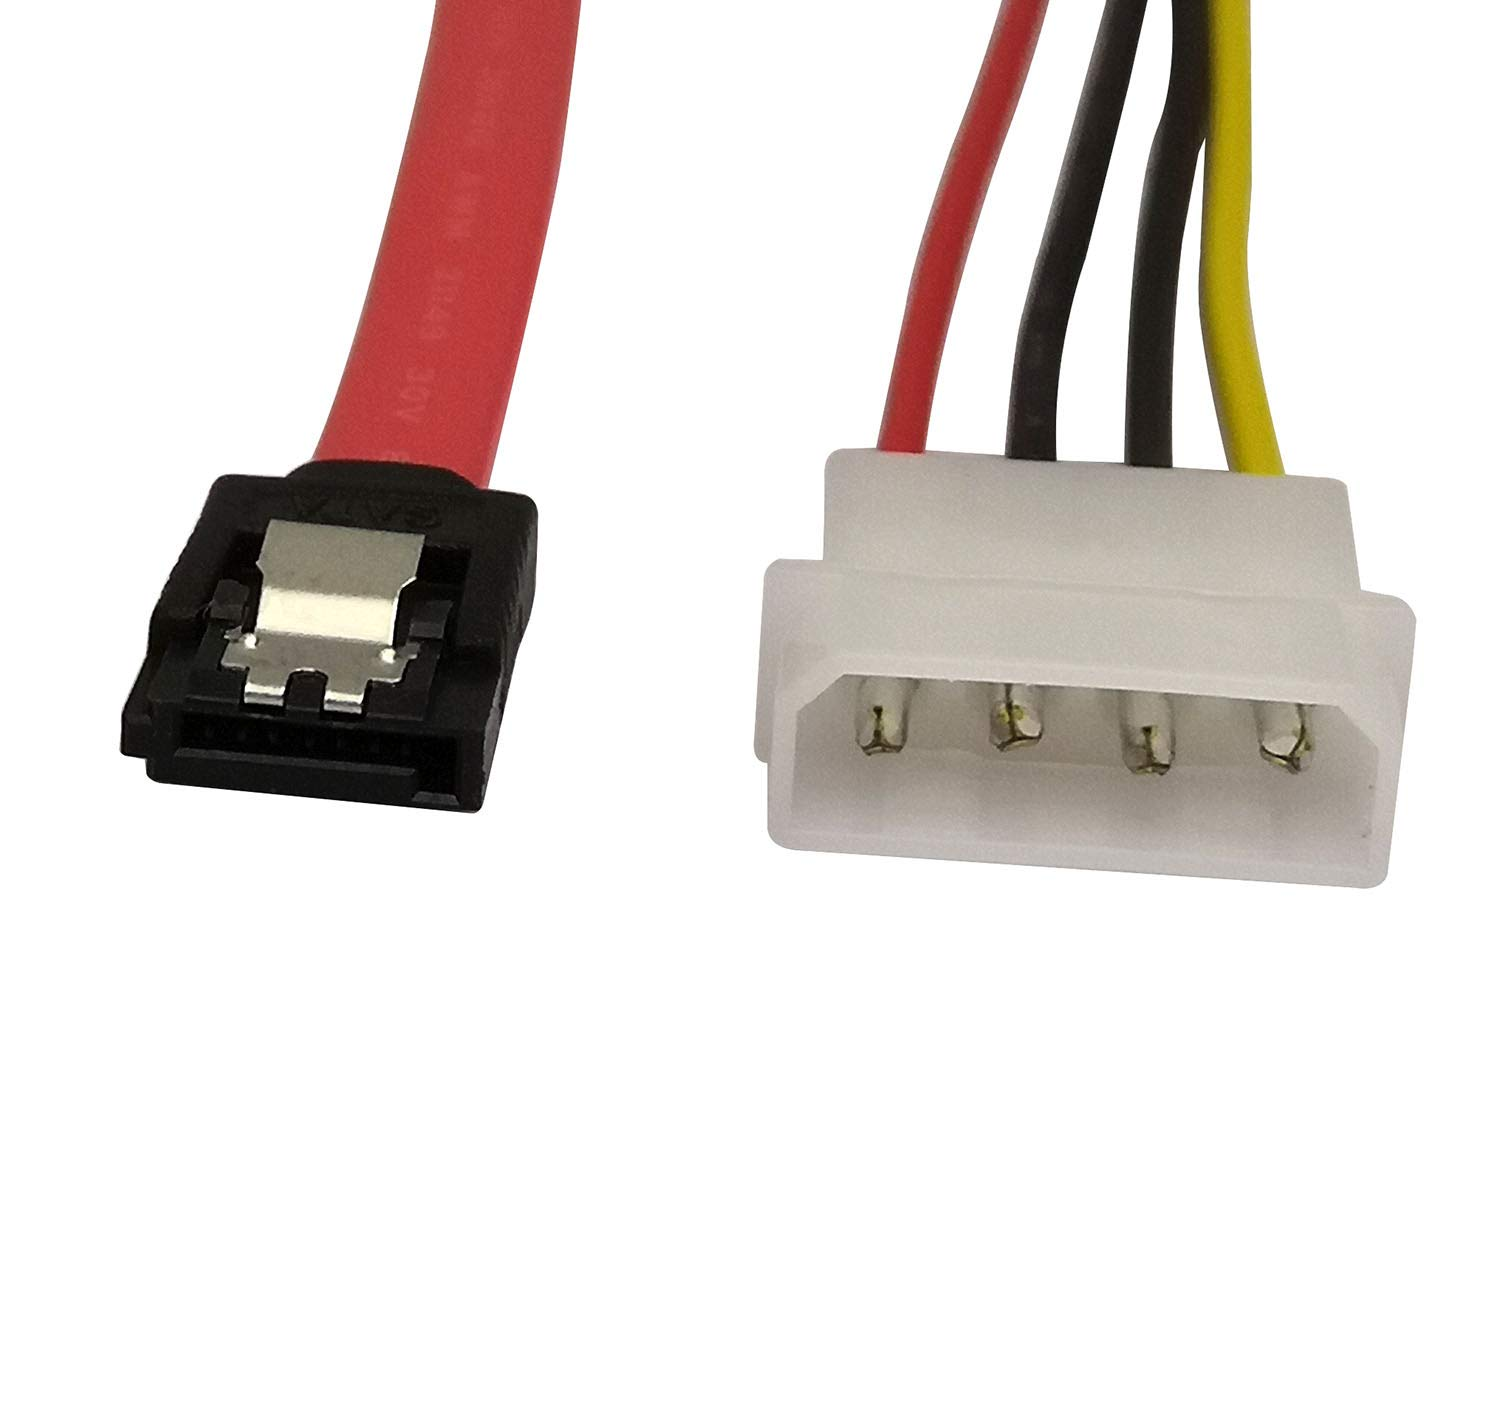 22 Pin Sata Ata Data And Power Combo Cable22pin To Slimline Connector 6 Cable 7pin Serial 4pin Ide Lp4 16inch 40cmsata